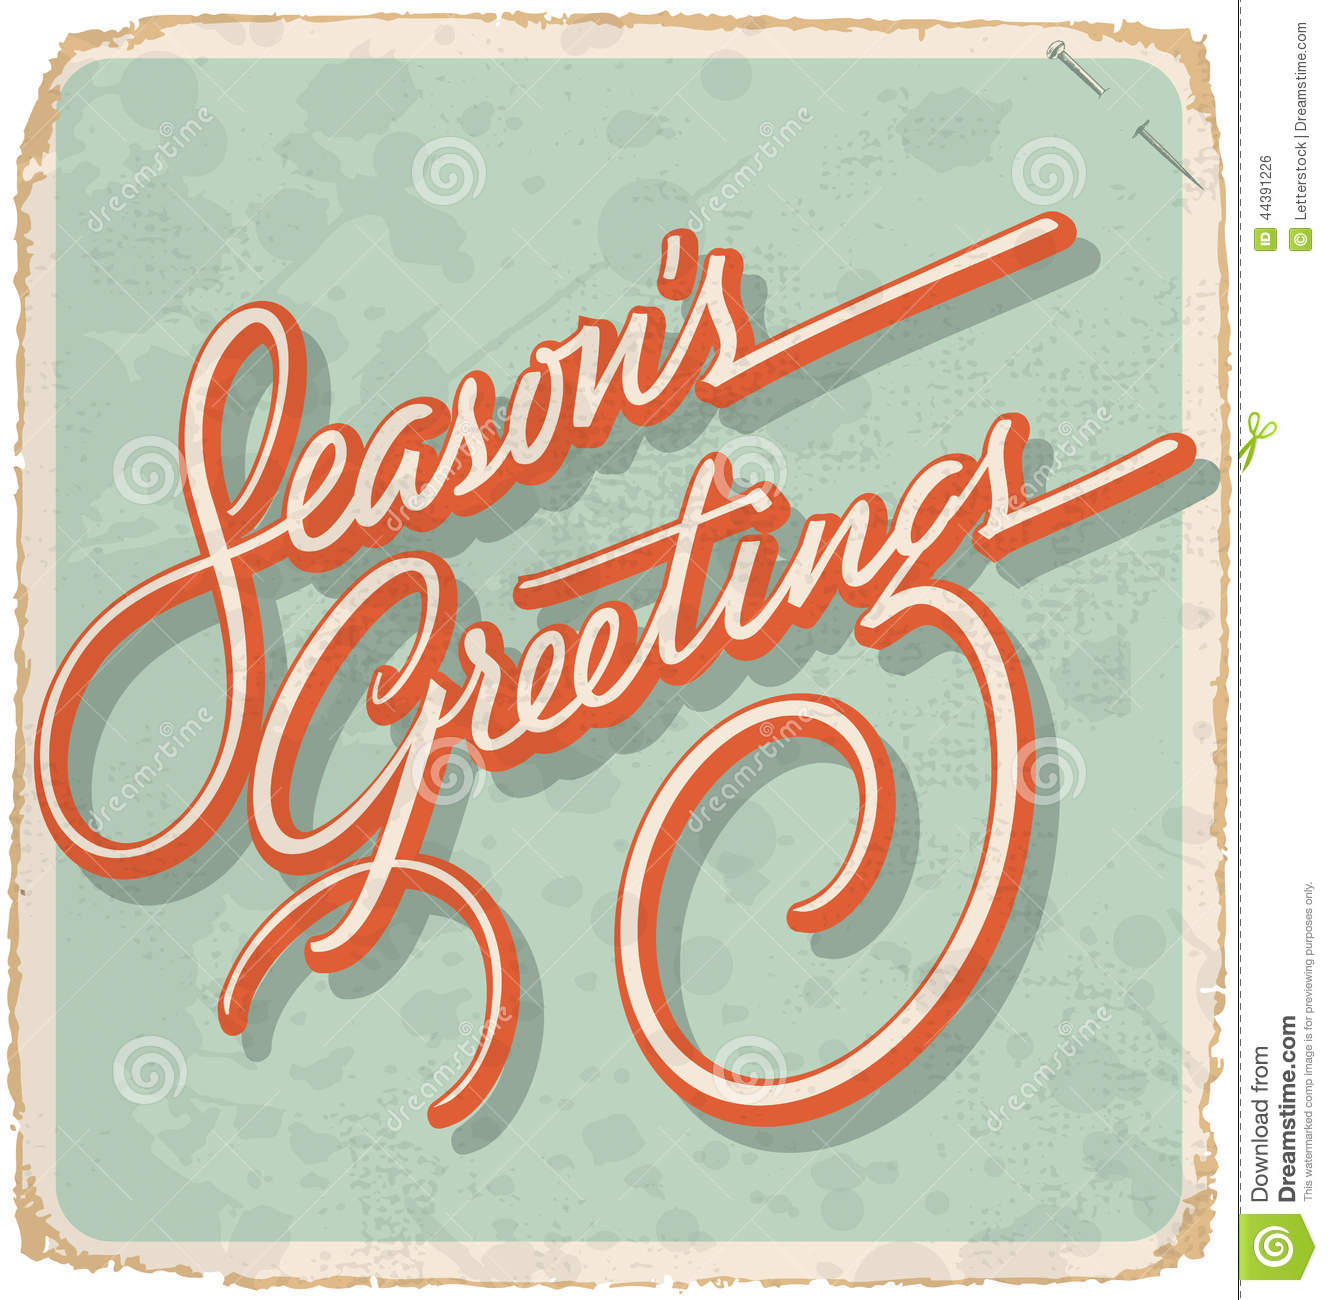 SEASONS GREETINGS Vintage Card Vector Stock Vector